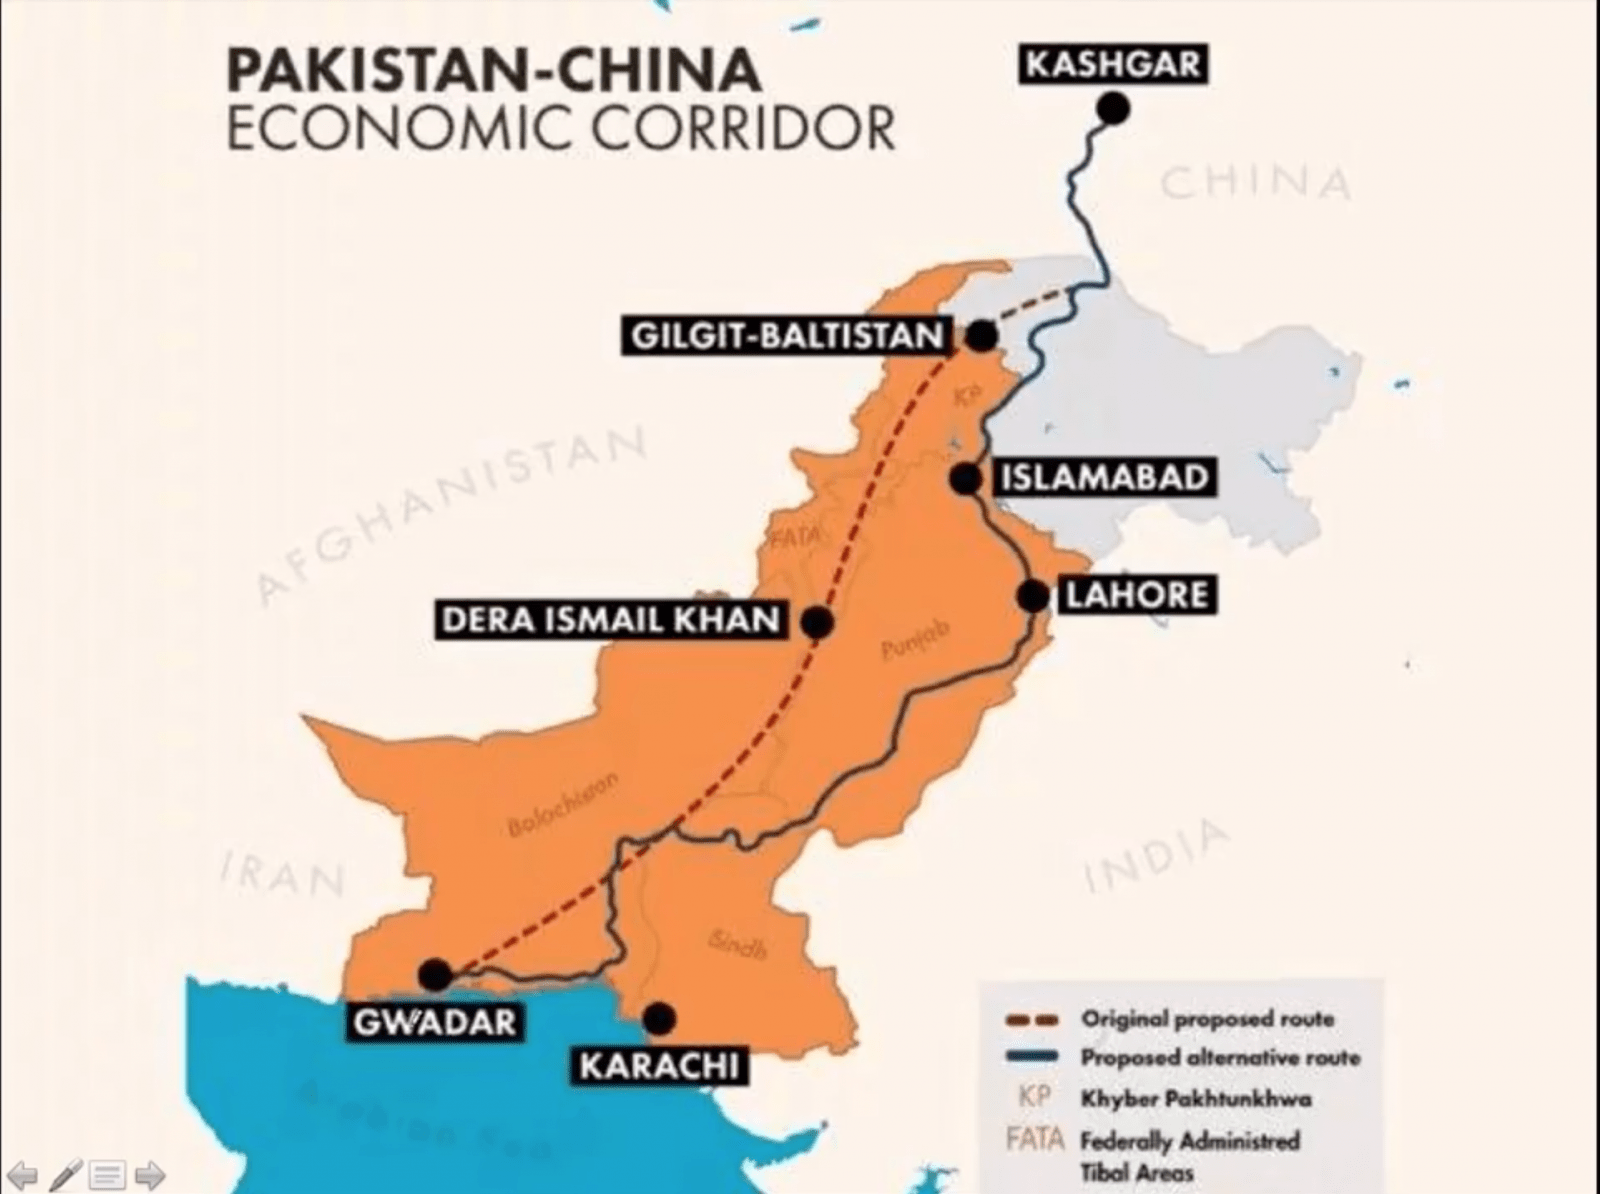 CPEC: THE MEGA WINDOW OF OPPORTUNITY